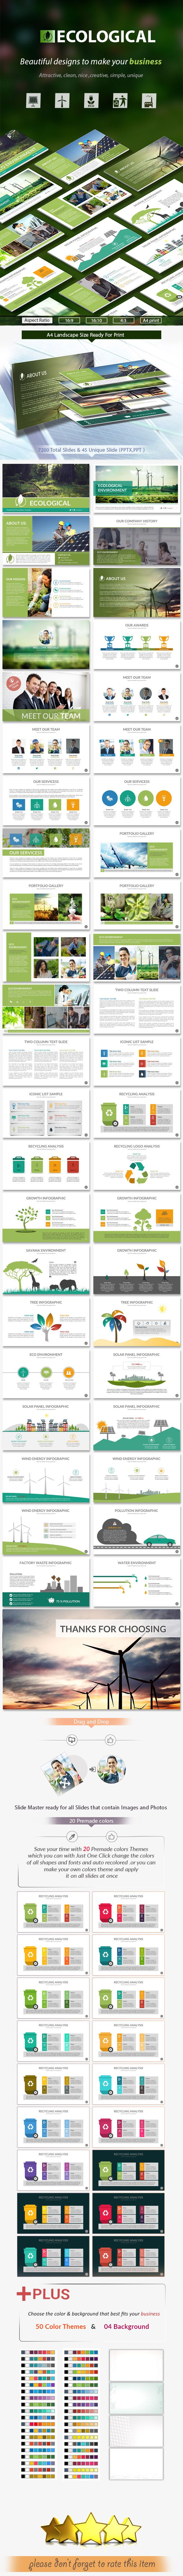 Ecological Powerpoint Presentation Template. Download here: http://graphicriver.net/item/ecological-powerpoint-presentation-template-/15973278?ref=ksioks